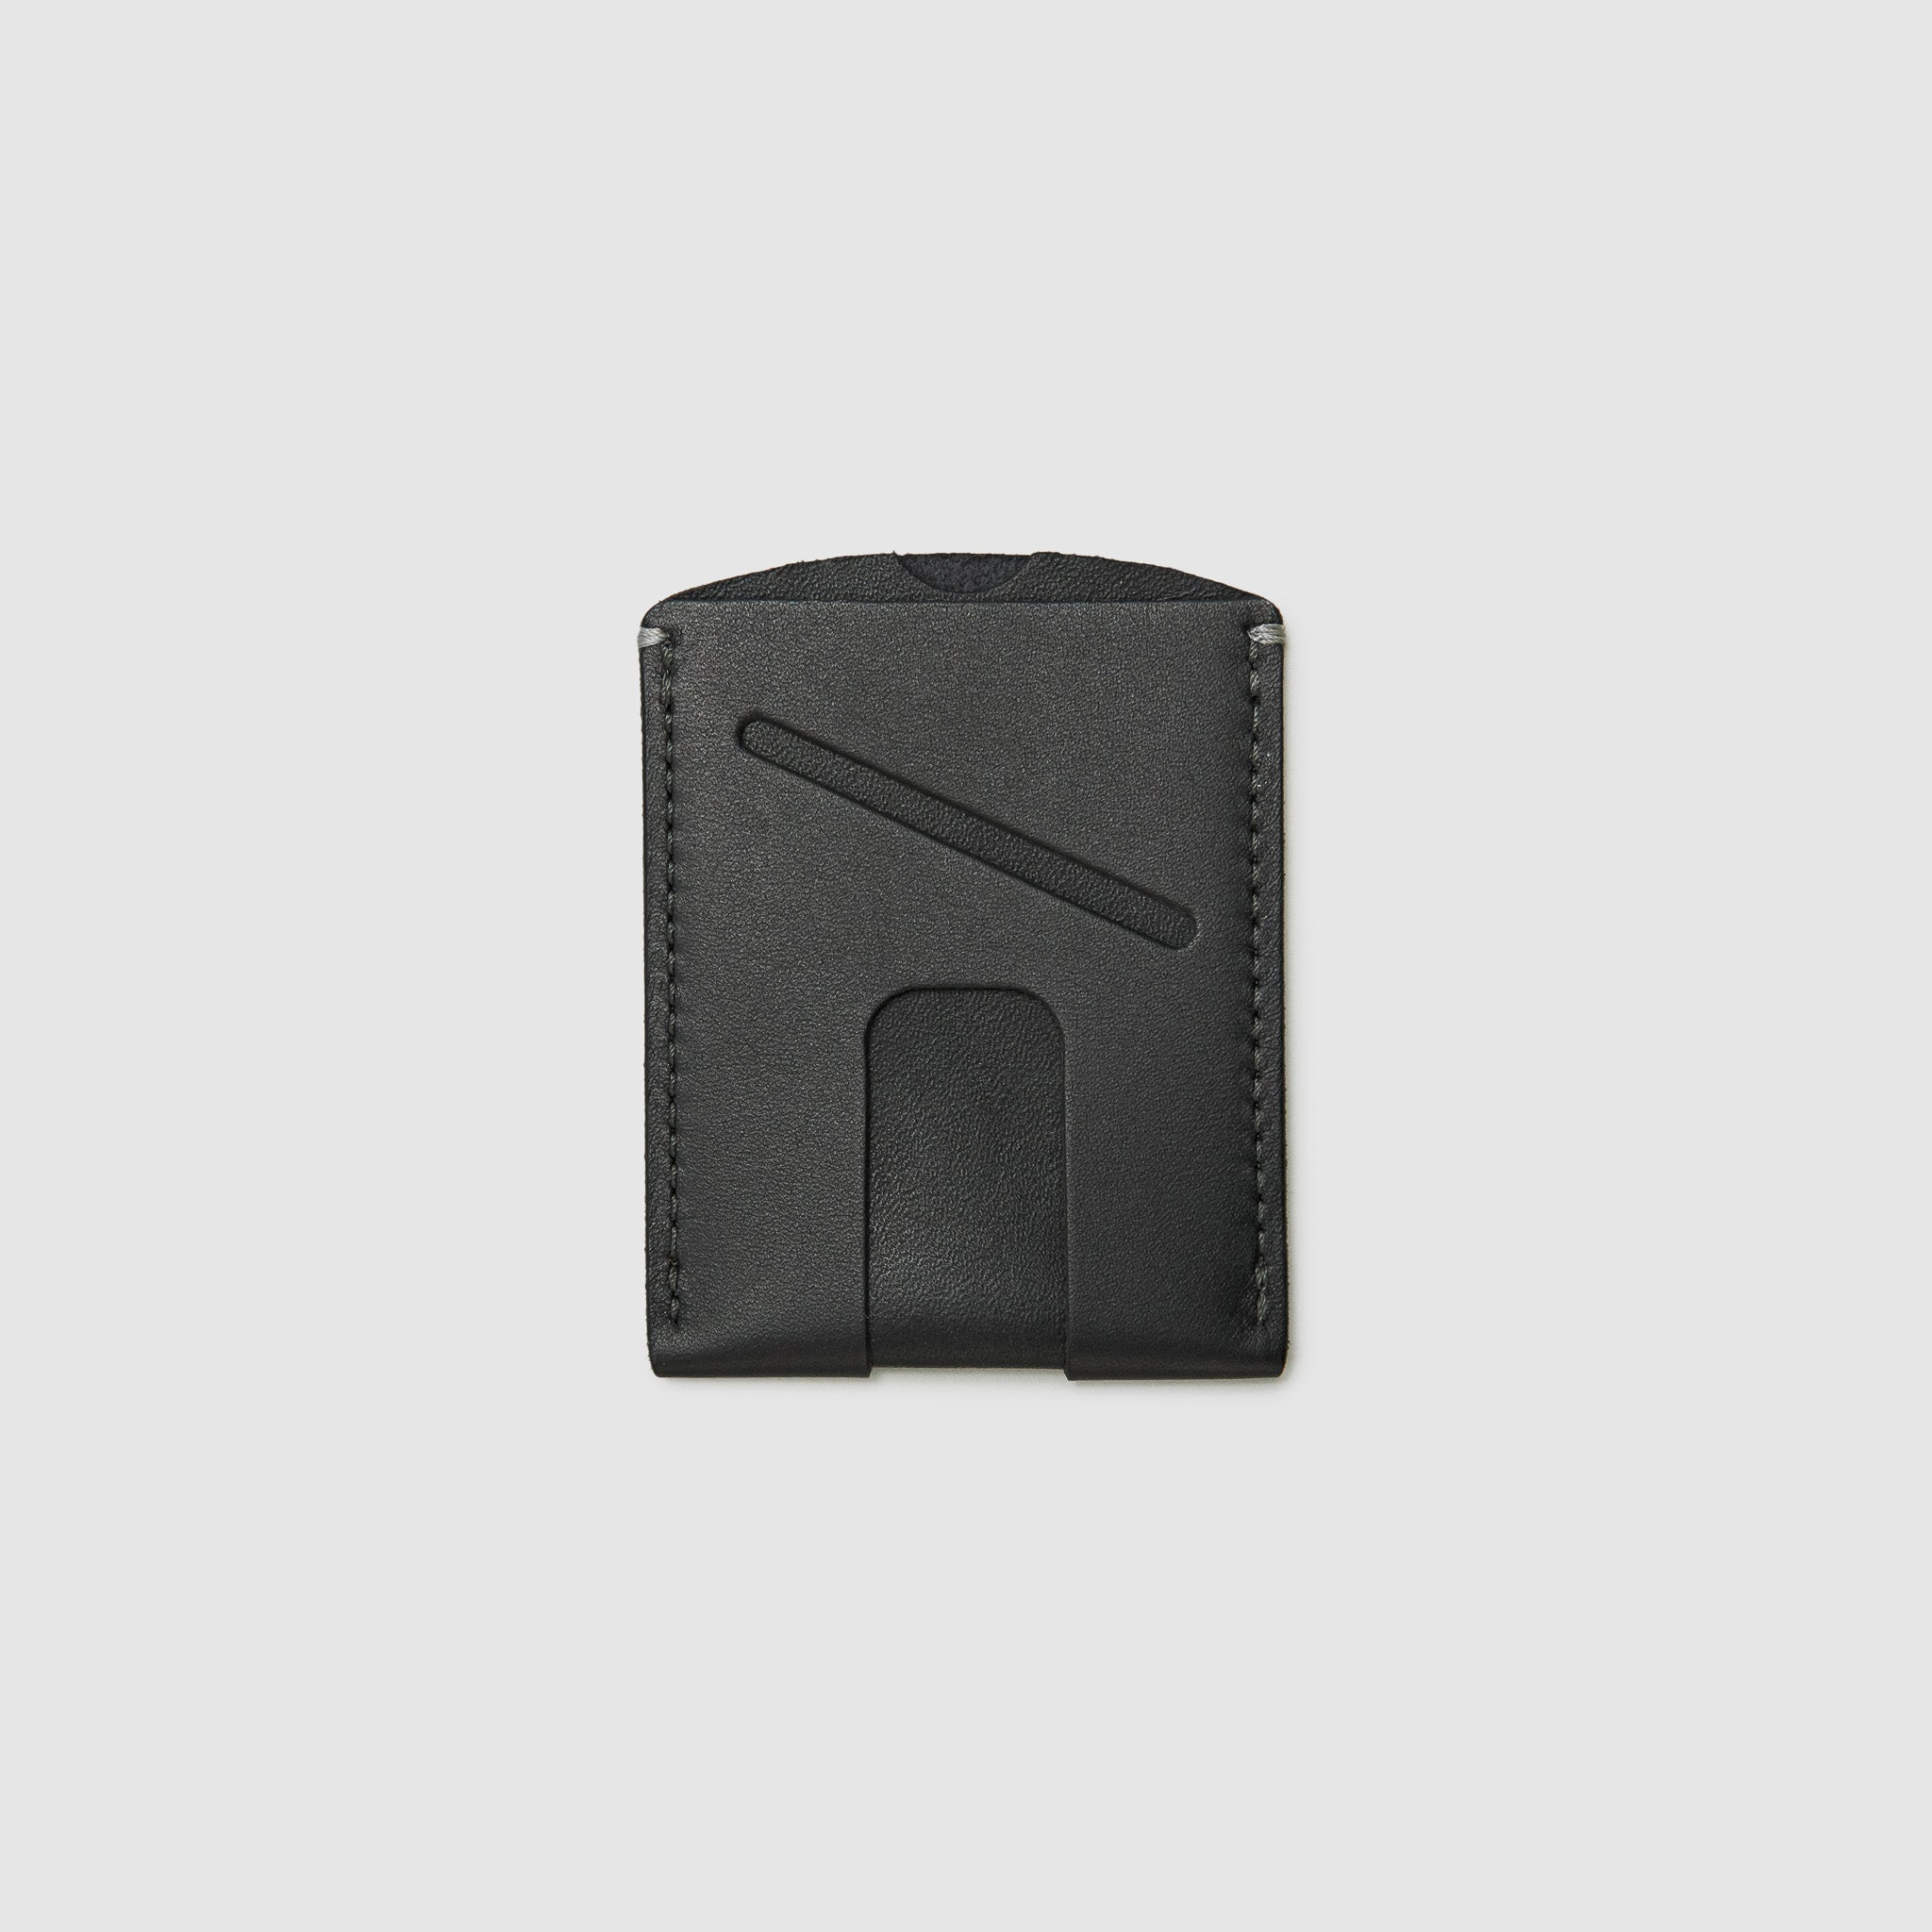 card wallet with cash slot minimal ANSON CALDER French Calfskin _blackPASSPORT WALLET WALLET ANSON CALDER french calfskin leather _black